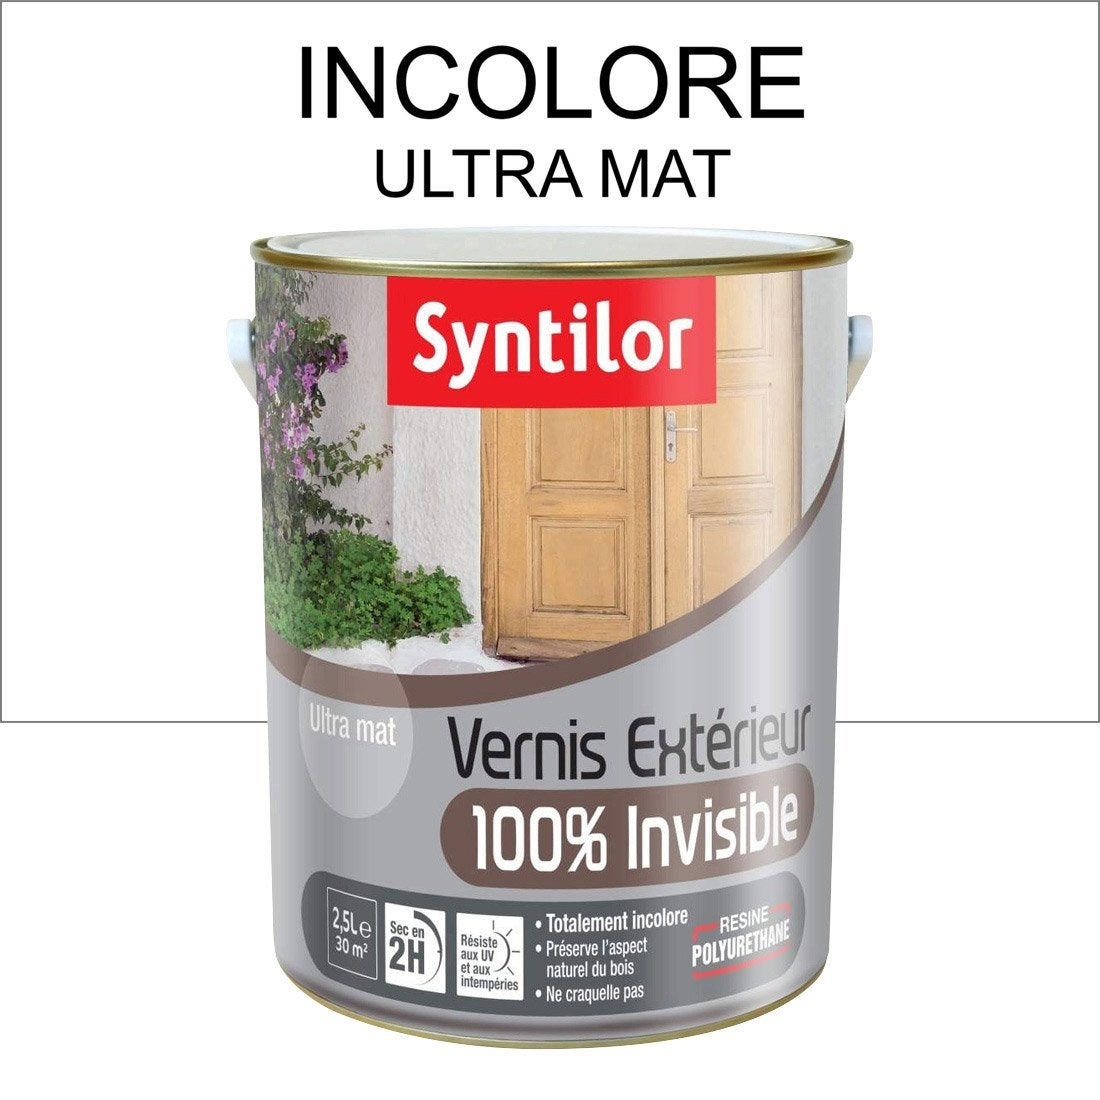 vernis ext rieur int rieur syntilor incolore aspect mat l leroy merlin. Black Bedroom Furniture Sets. Home Design Ideas